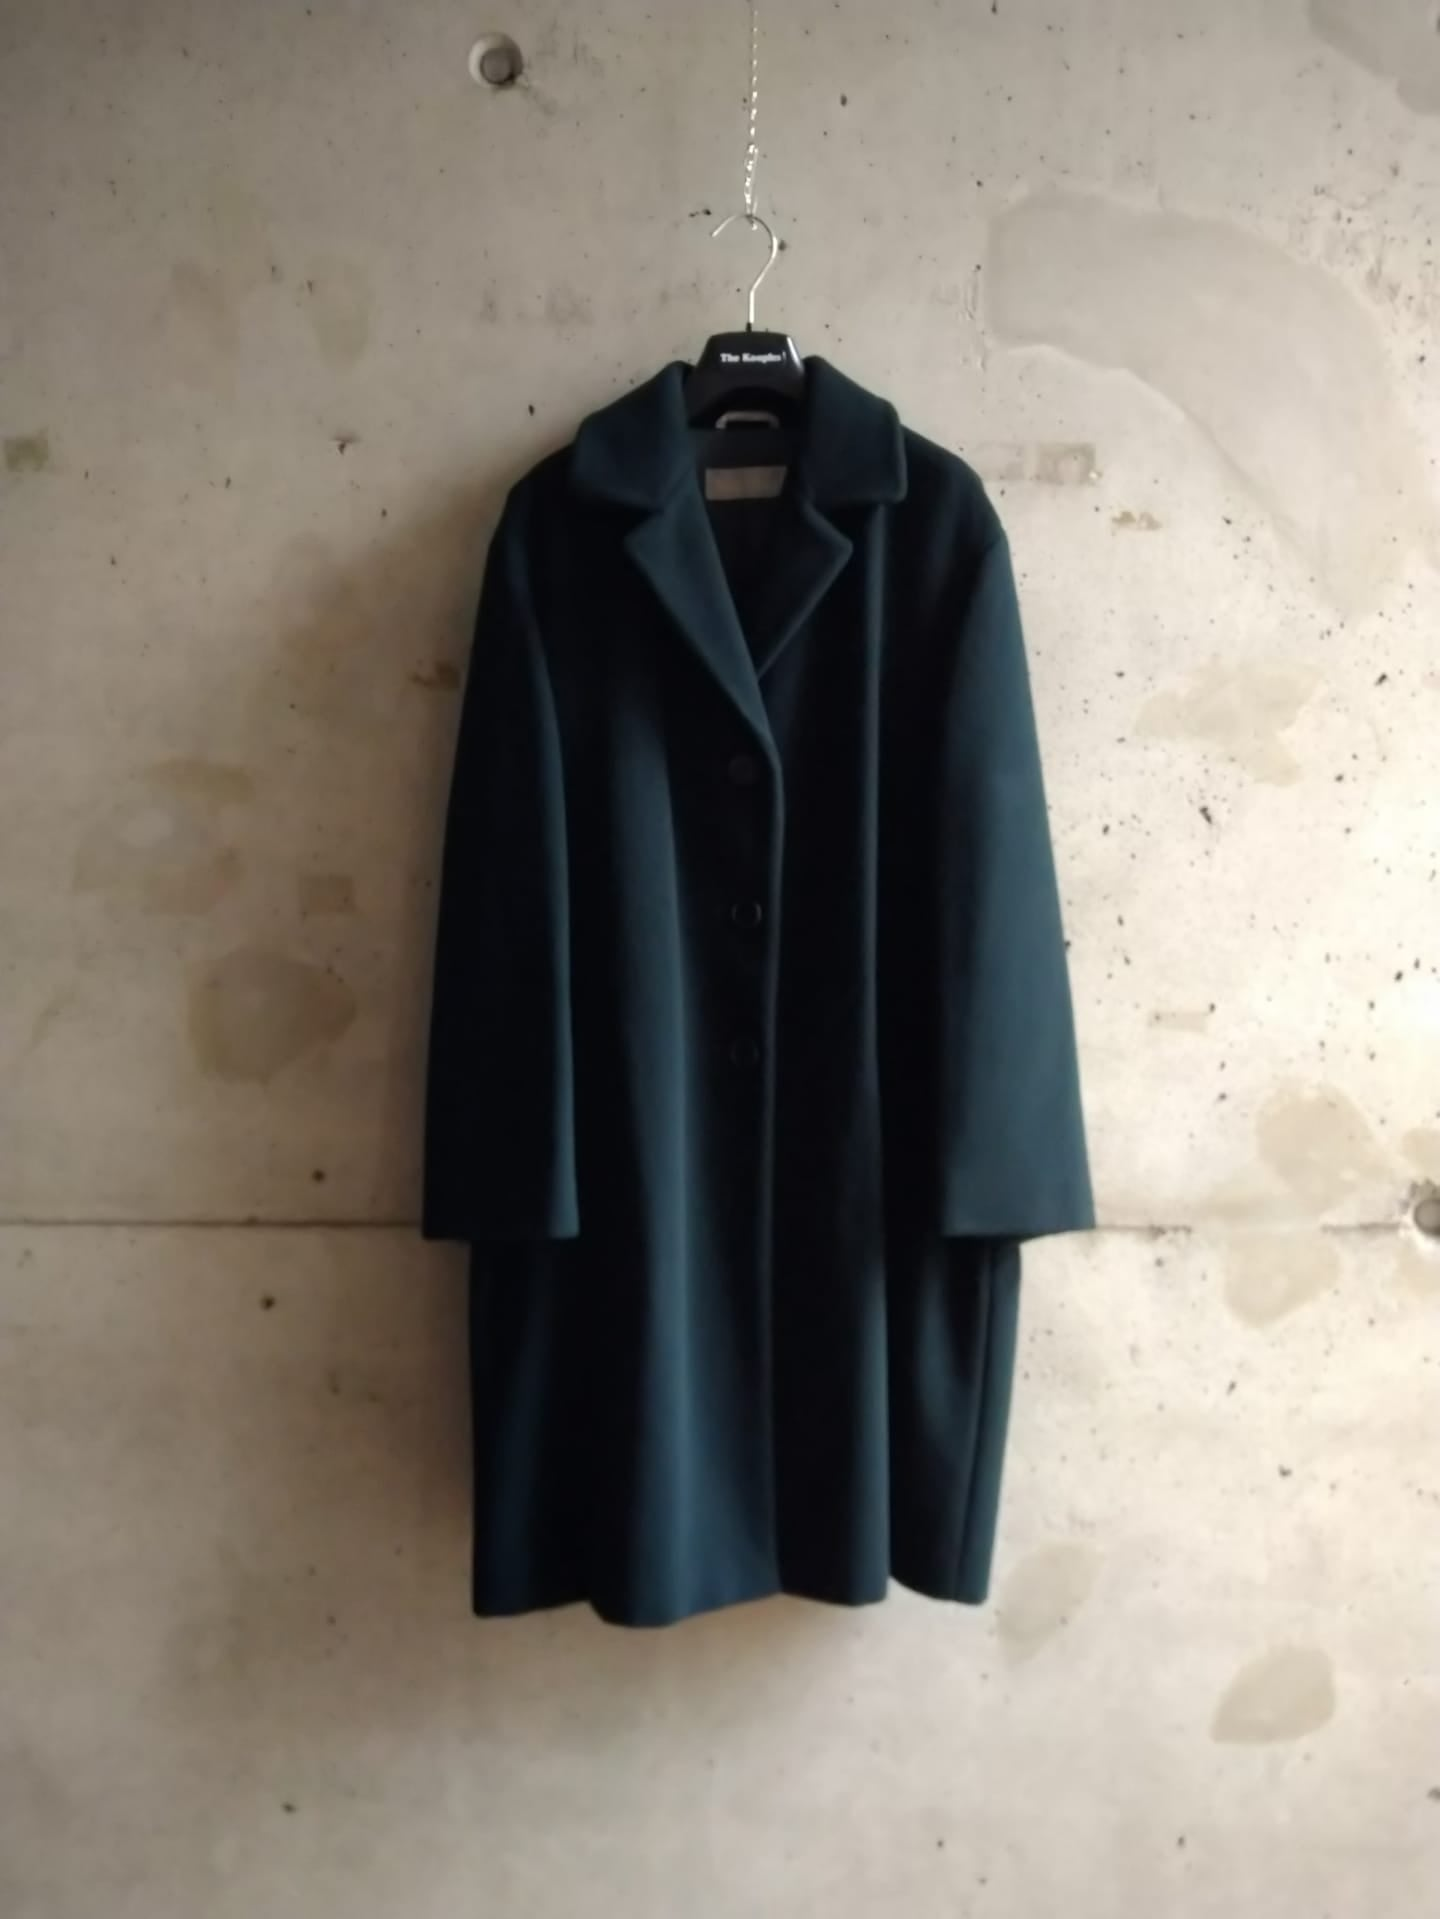 Max Mara dark green coat